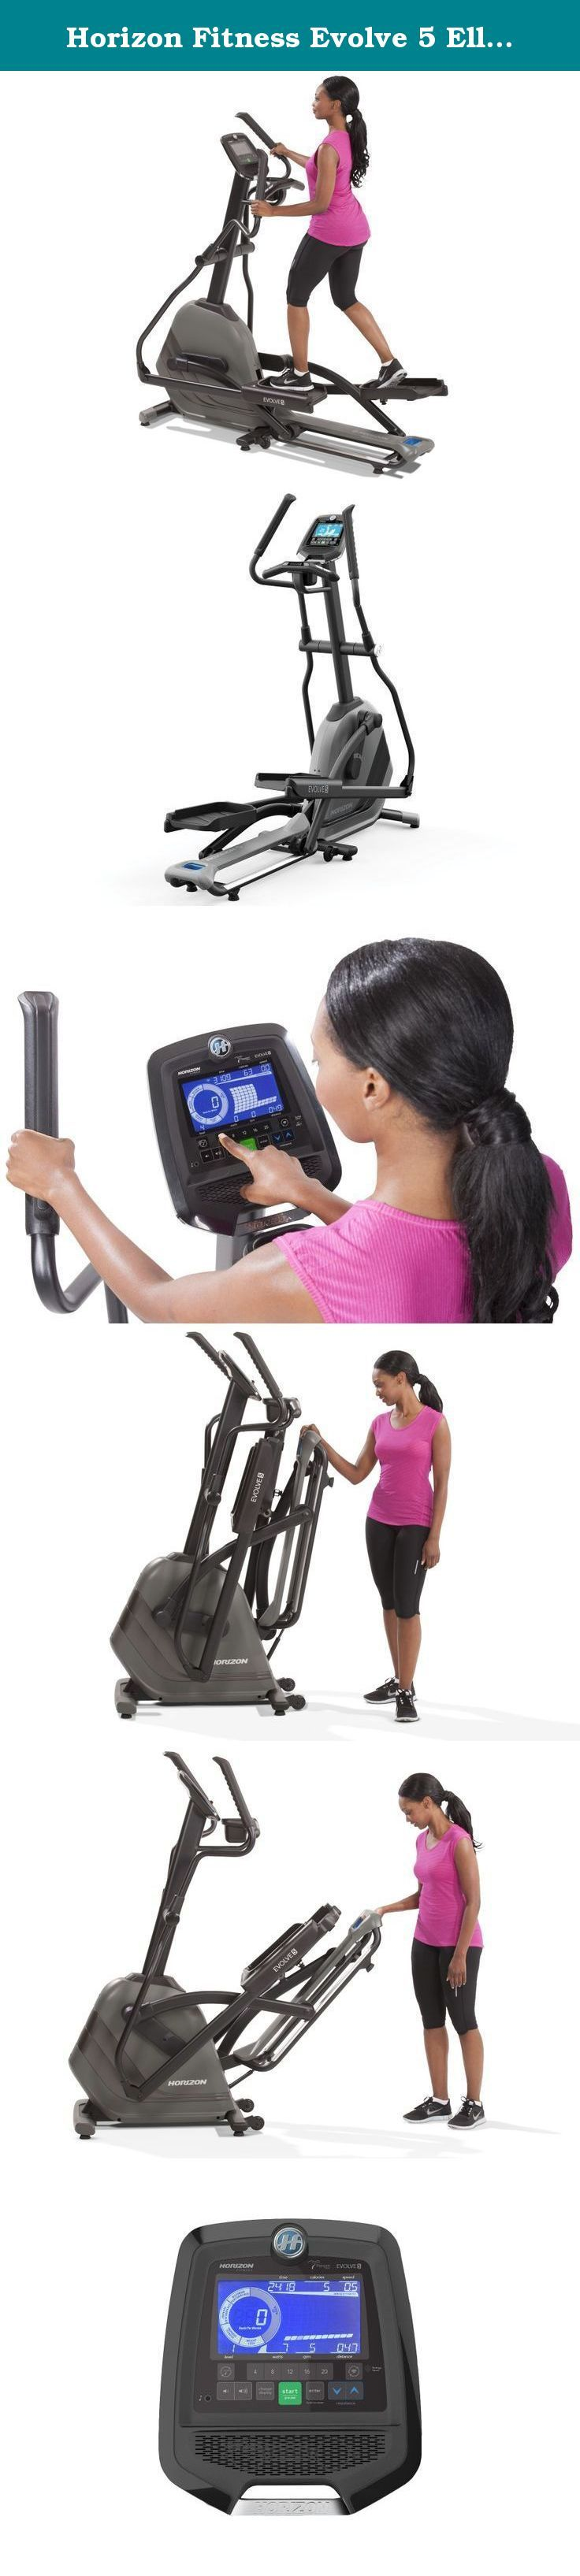 Horizon Fitness Evolve 5 Elliptical Trainer. The heavy flywheel, expansive programming and large, backlit display make the Horizon Fitness Evolve 5 perfect for serious training. Plus, the simple assembly, effortless folding and compact footprint make this elliptical as easy to own as it is to use.